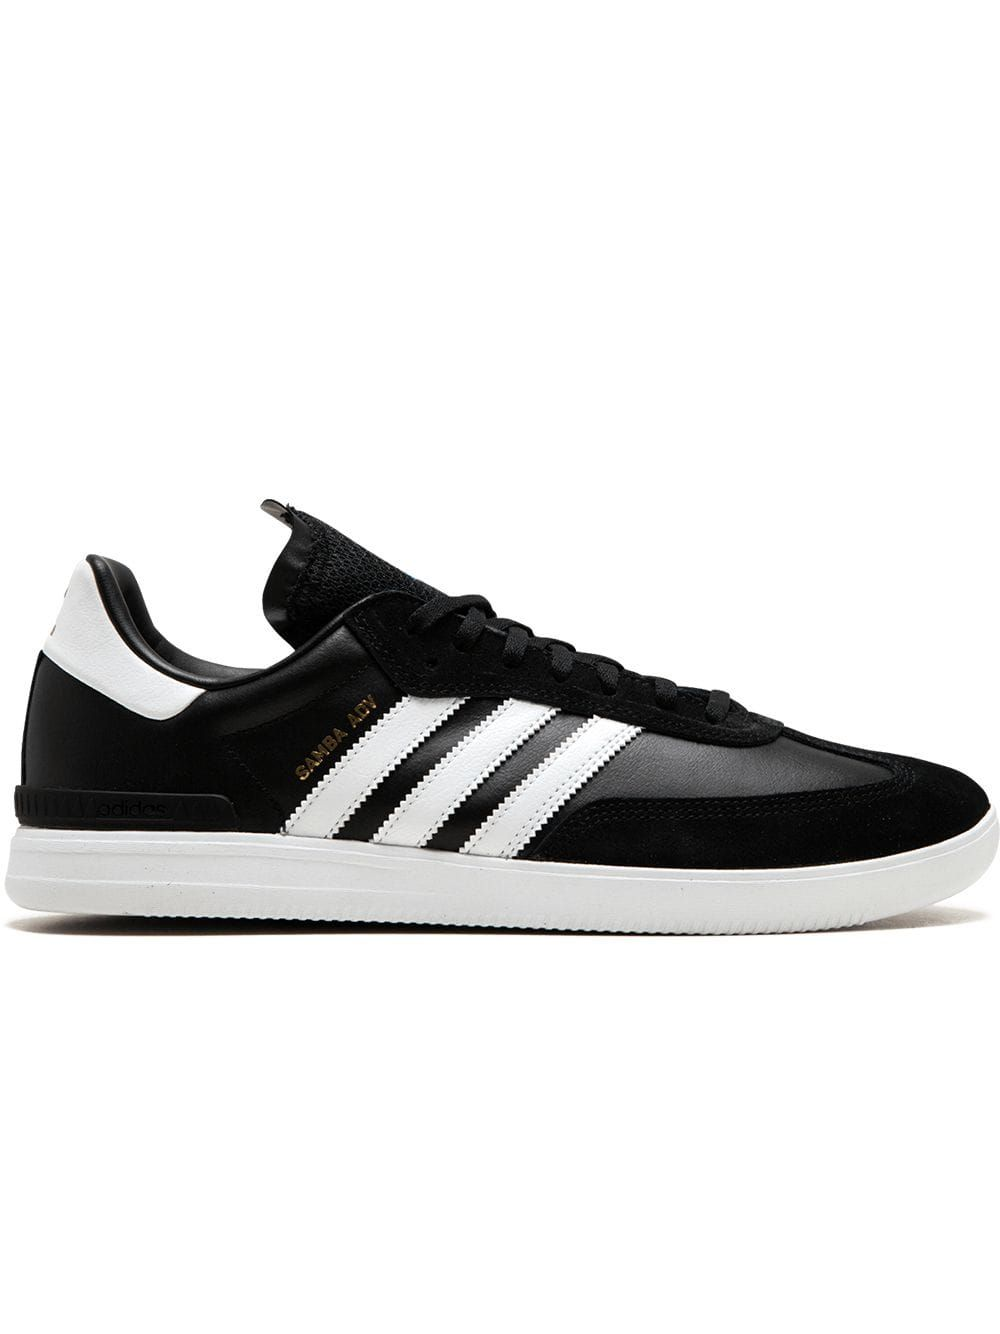 ADIDAS ORIGINALS ADIDAS SAMBA ADV - BLACK.  adidasoriginals  shoes ... cbf2ab5caa